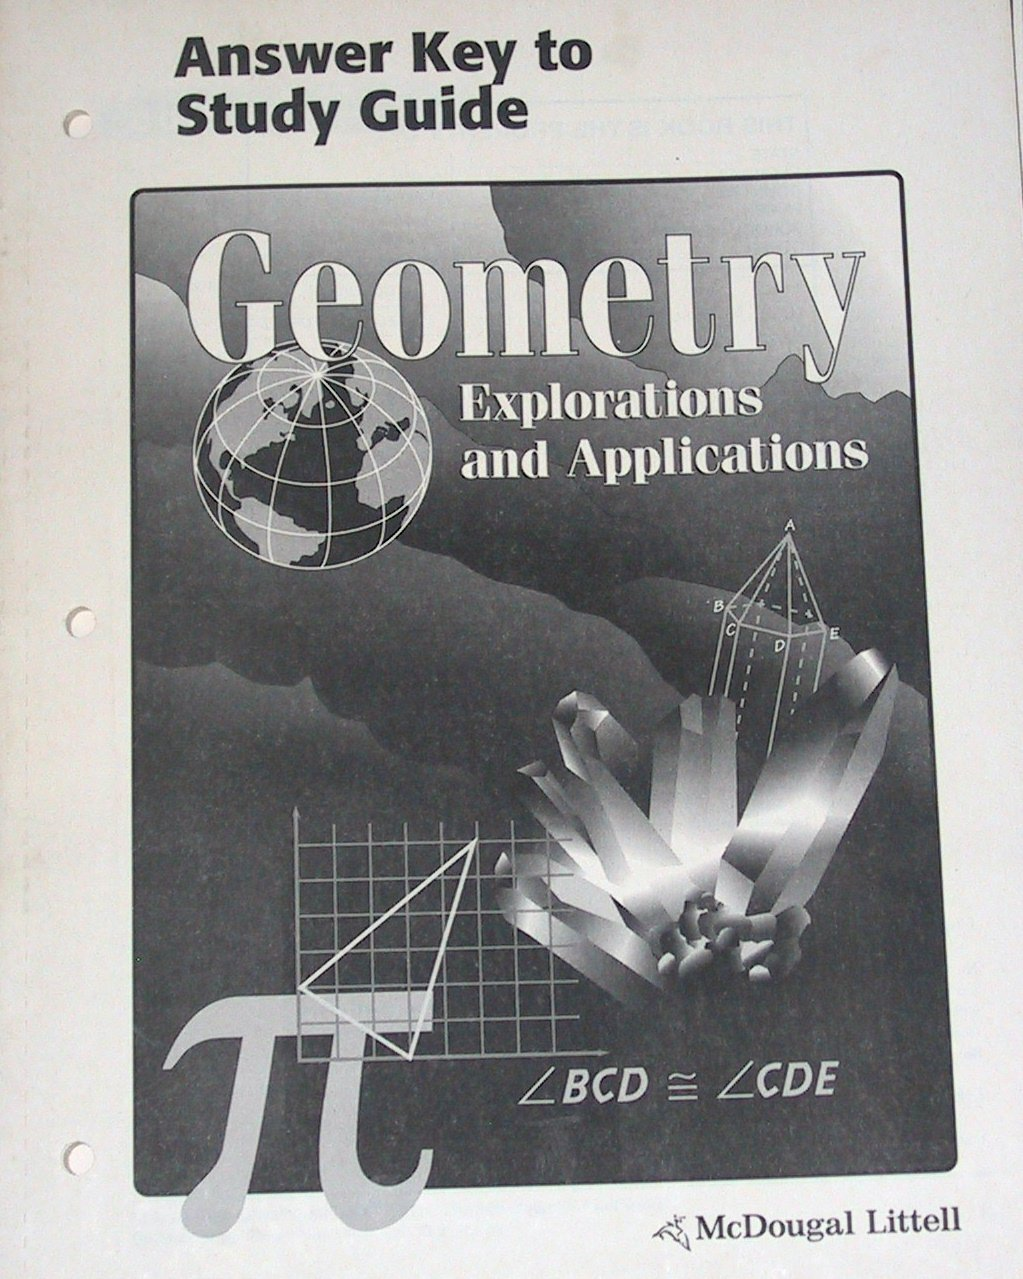 Workbooks geometry workbook mcdougal littell answer key : Geometry Explorations and Applications (Answer Key to Study Guide ...